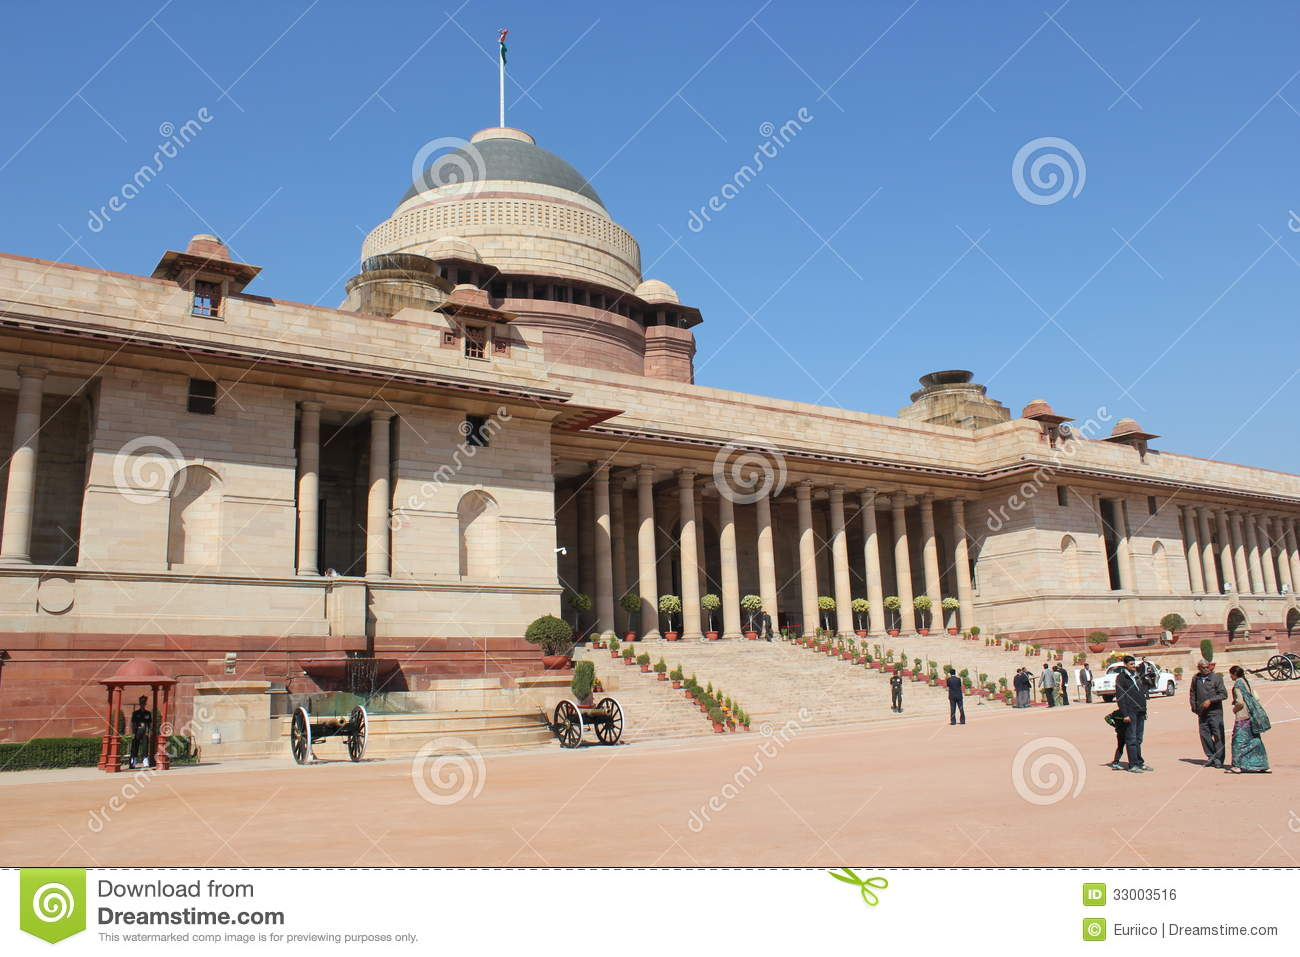 President house of india images